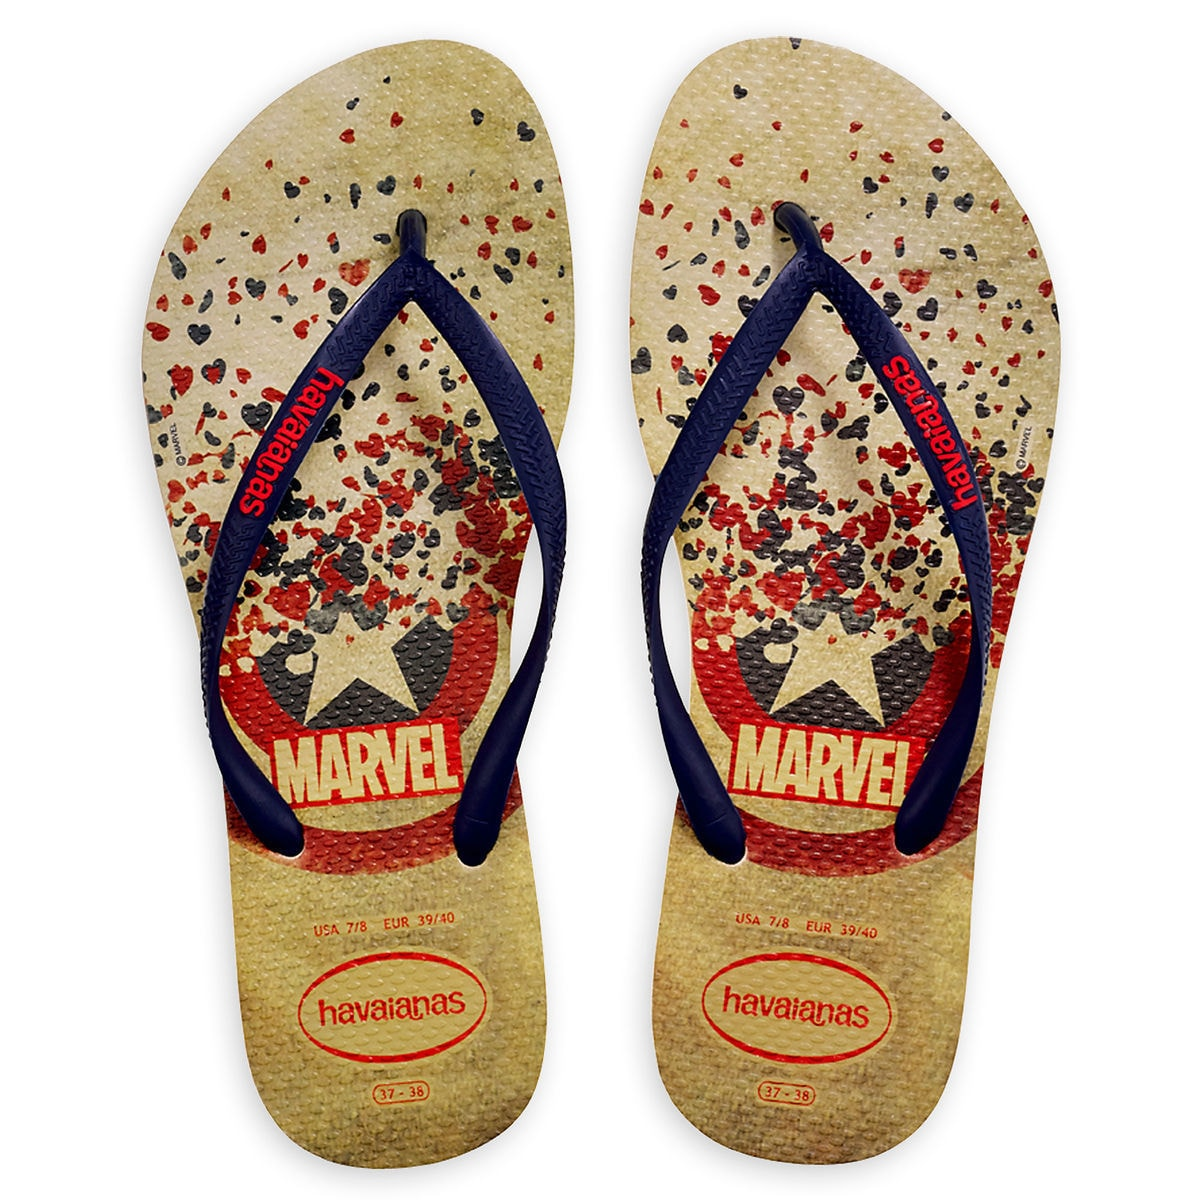 707e67605258 Captain America Flip Flops for Women by Havaianas